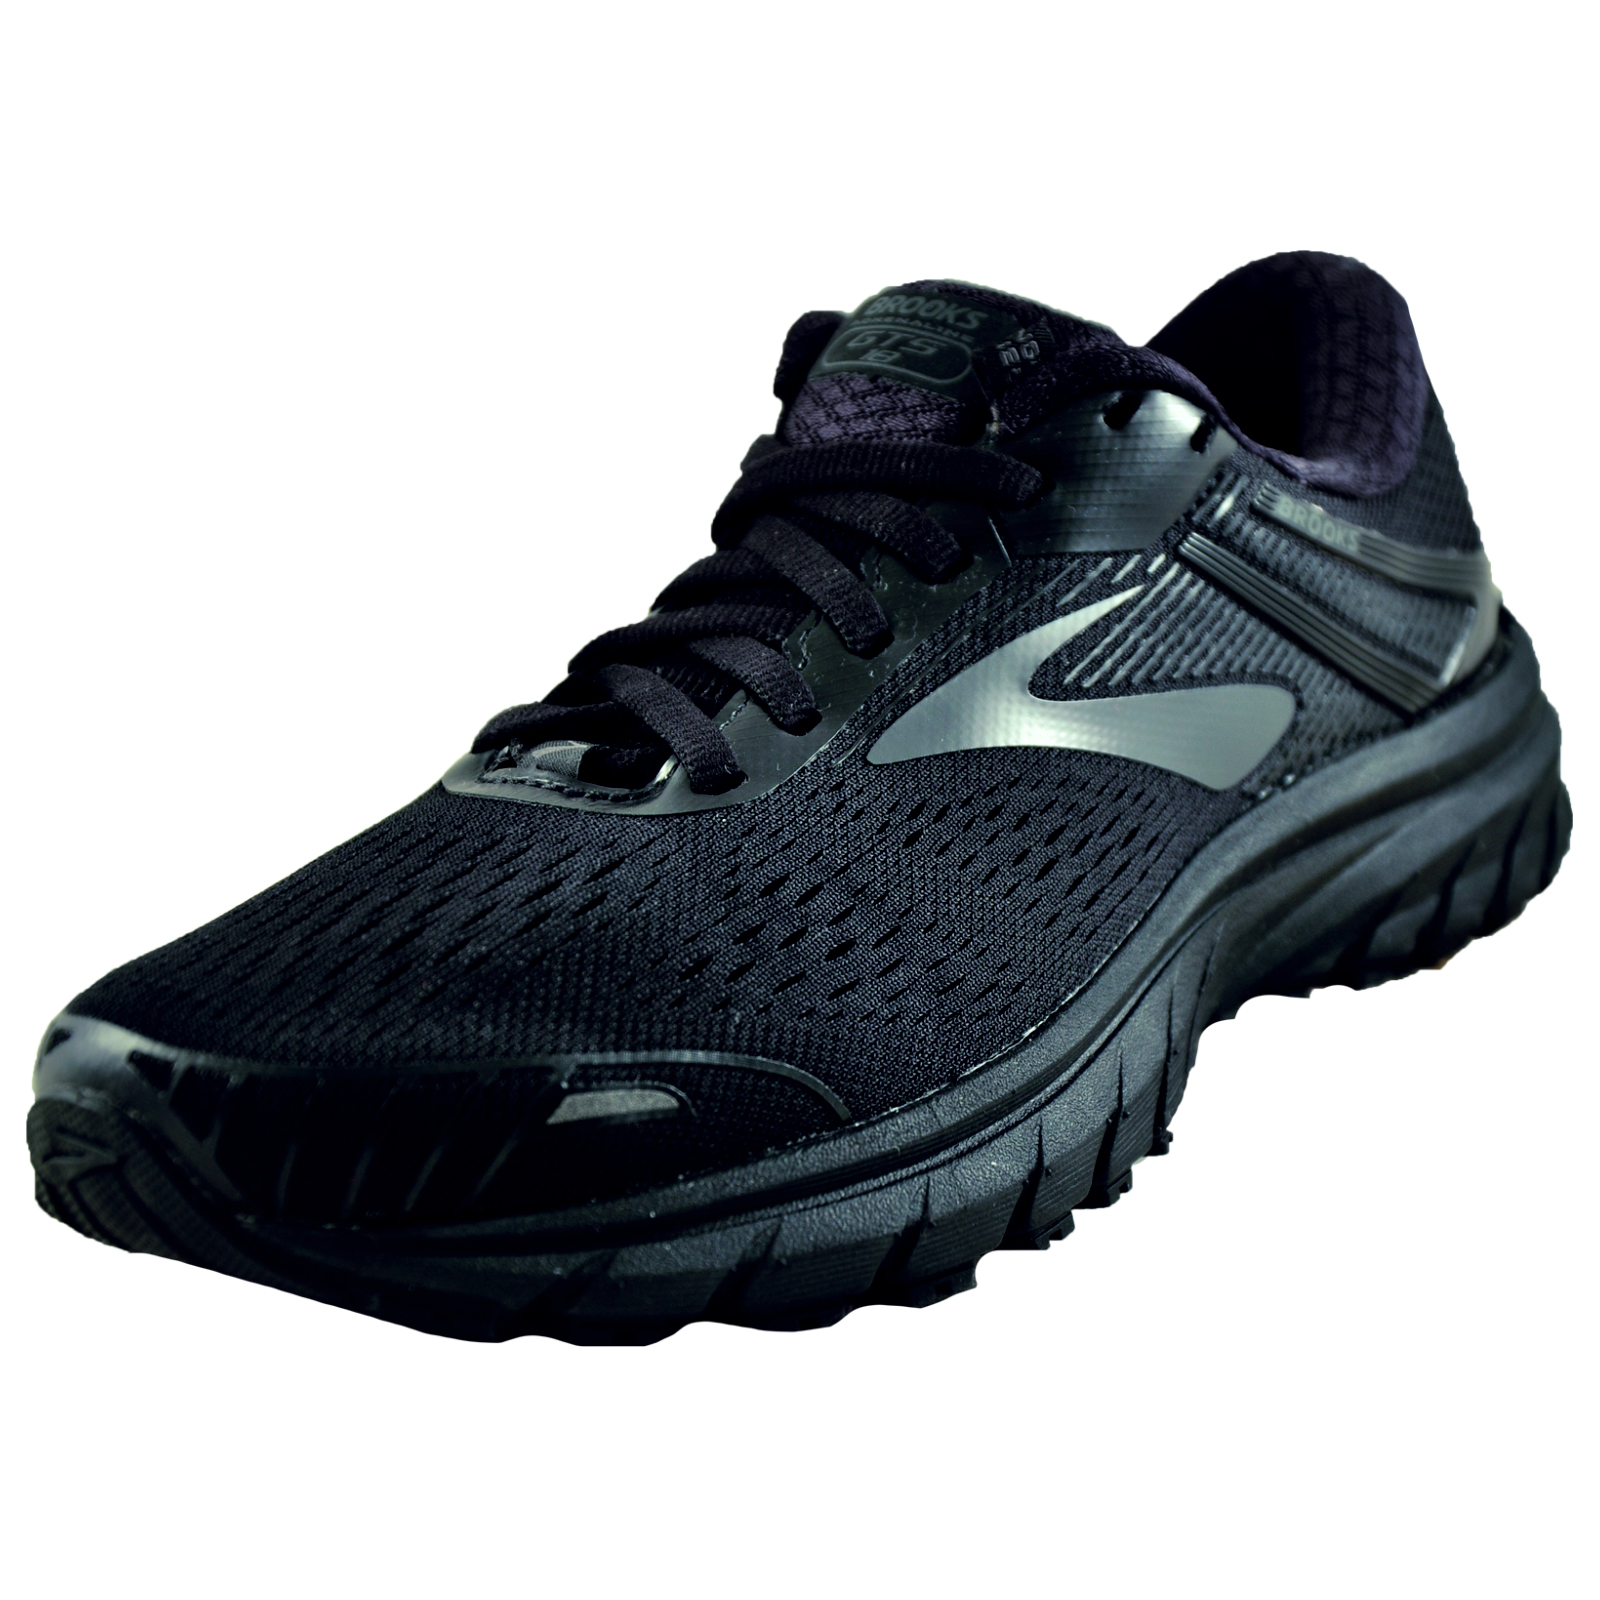 9cae260bd60 Details about Brooks Adrenaline GTS 18 Support Women s Running Shoes  Fitness Trainers